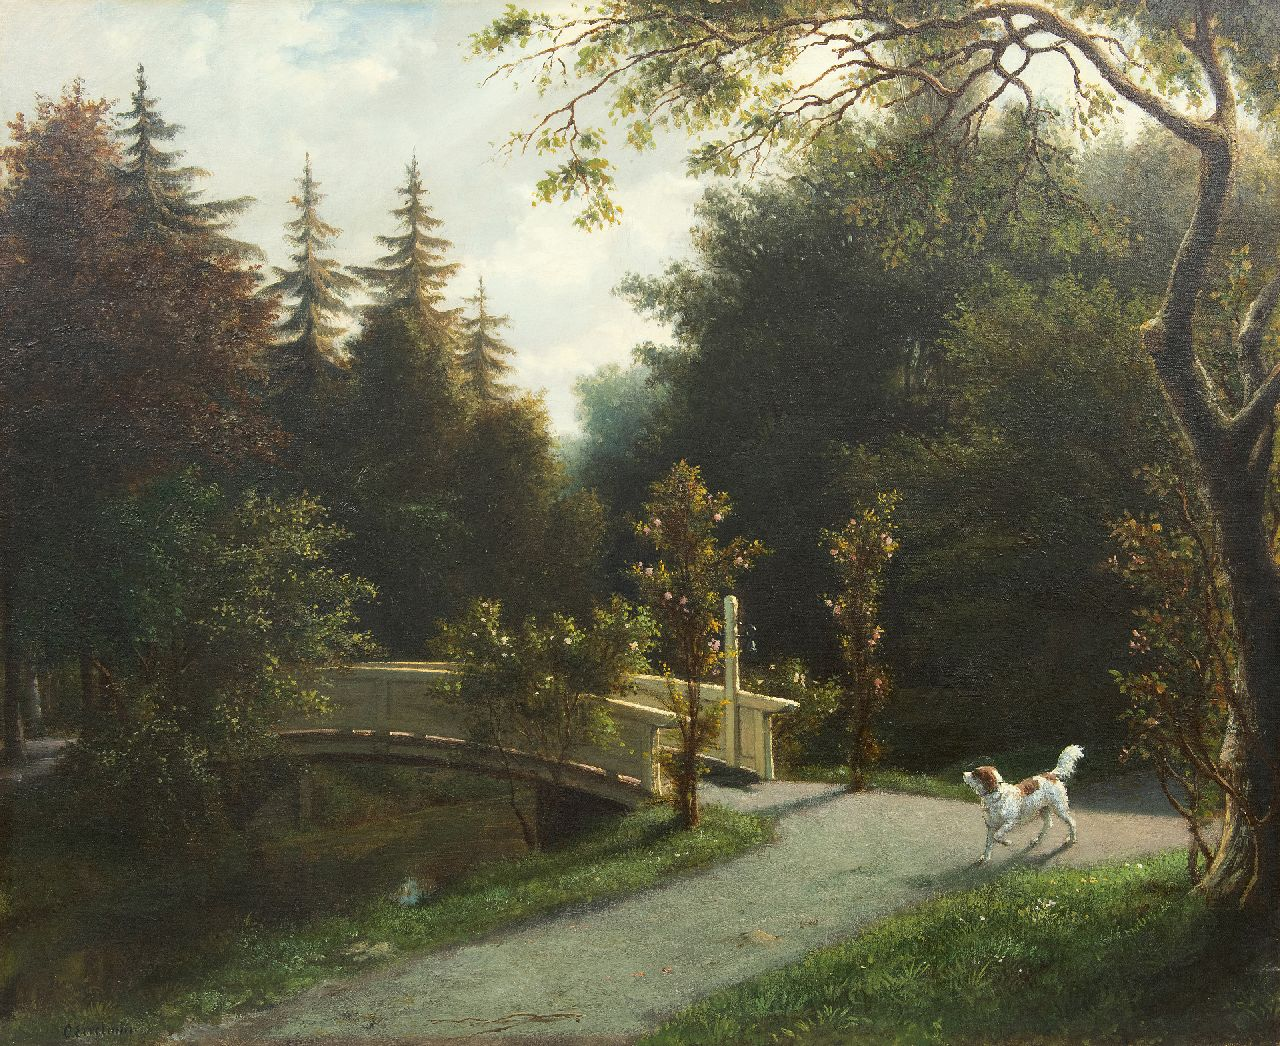 Eerelman O.  | Otto Eerelman | Paintings offered for sale | Hunting dog in a parc, oil on canvas 65.5 x 81.0 cm, signed l.l.